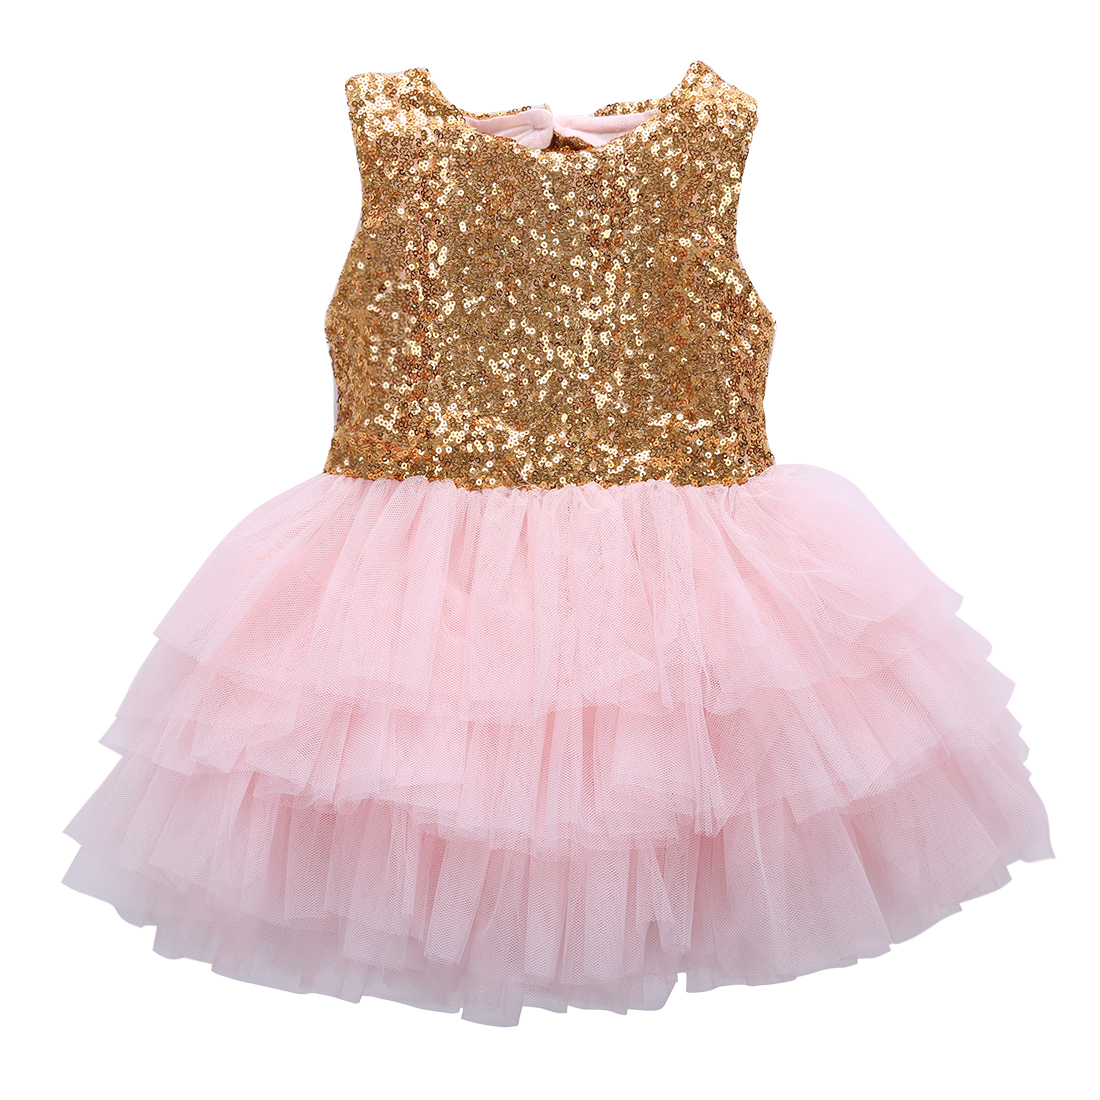 0d212e3a3 2017 New Arrival Toddler Baby Girl Dress Princess Sequins Dress Bow Tulle  Cake Dress Gown Party Dresses-in Dresses from Mother & Kids on  Aliexpress.com ...